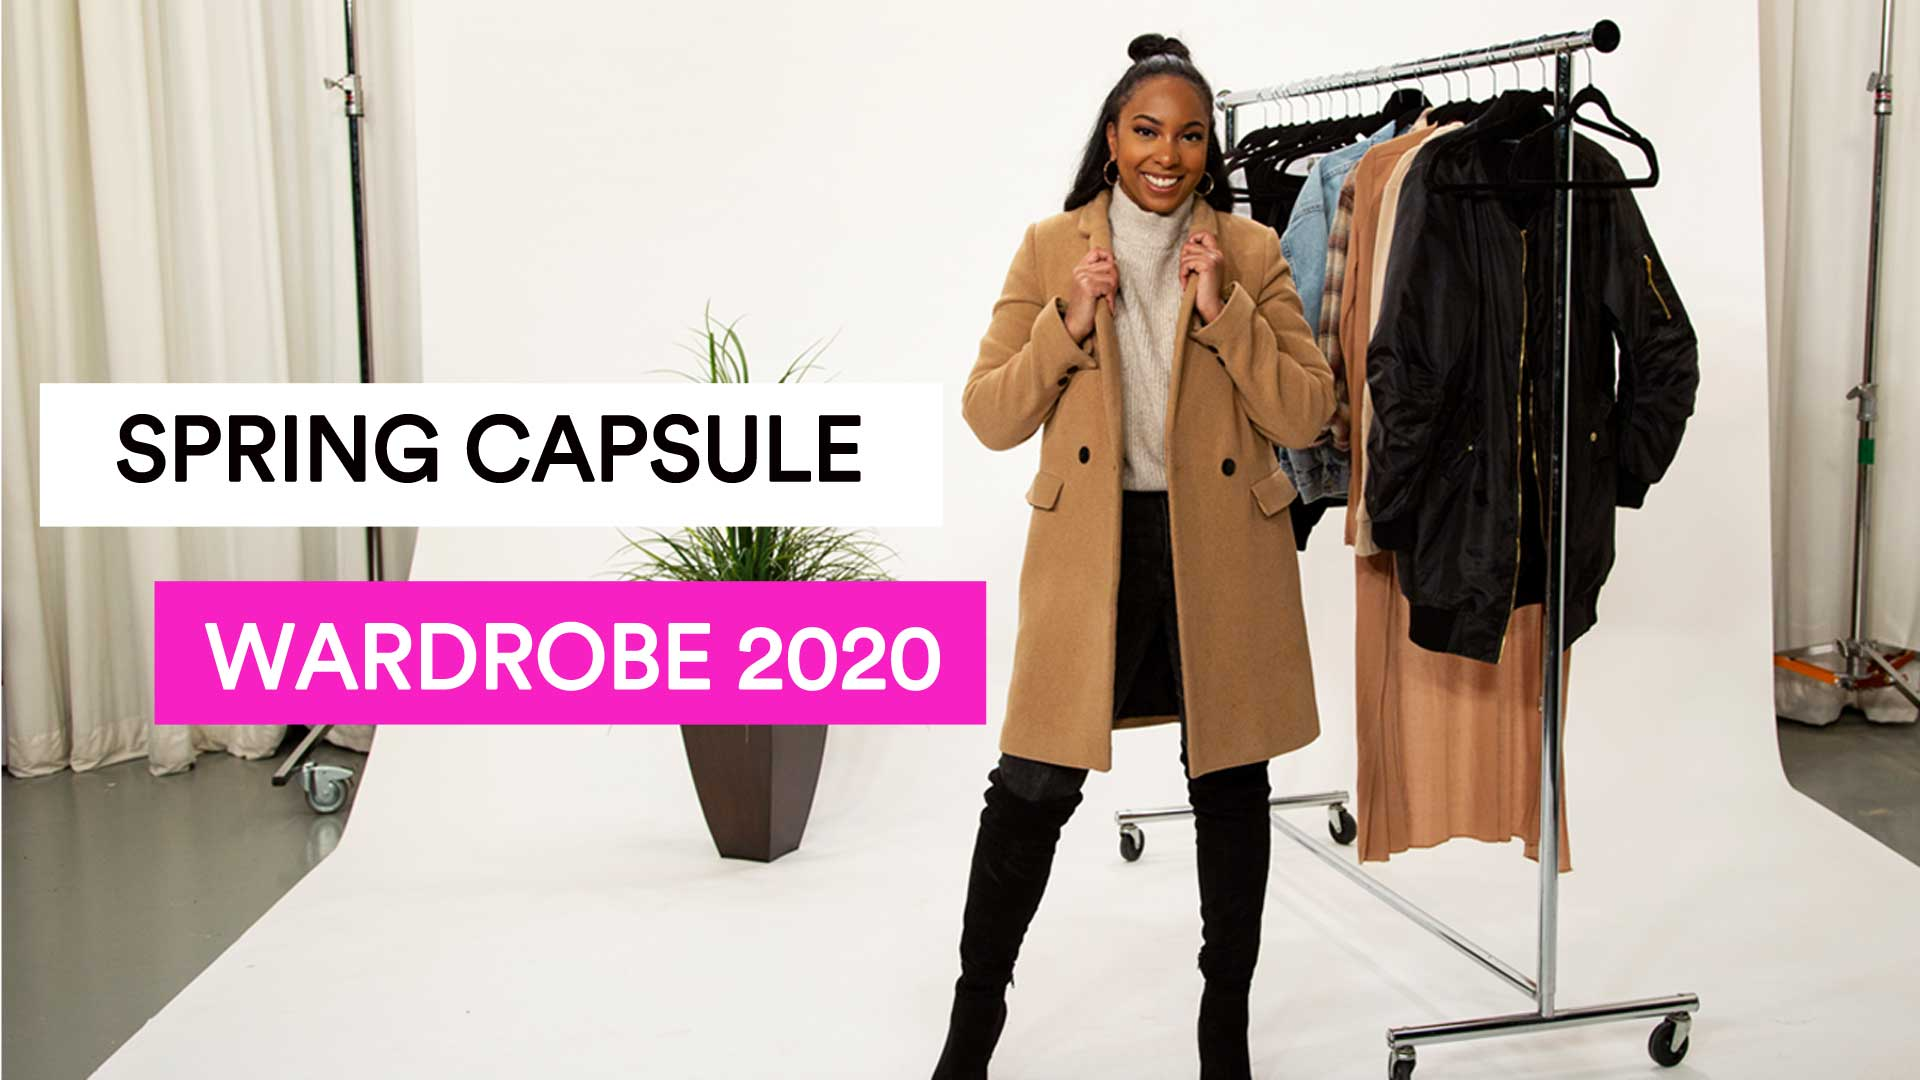 Spring Capsule Wardrobe. Go to a video page.